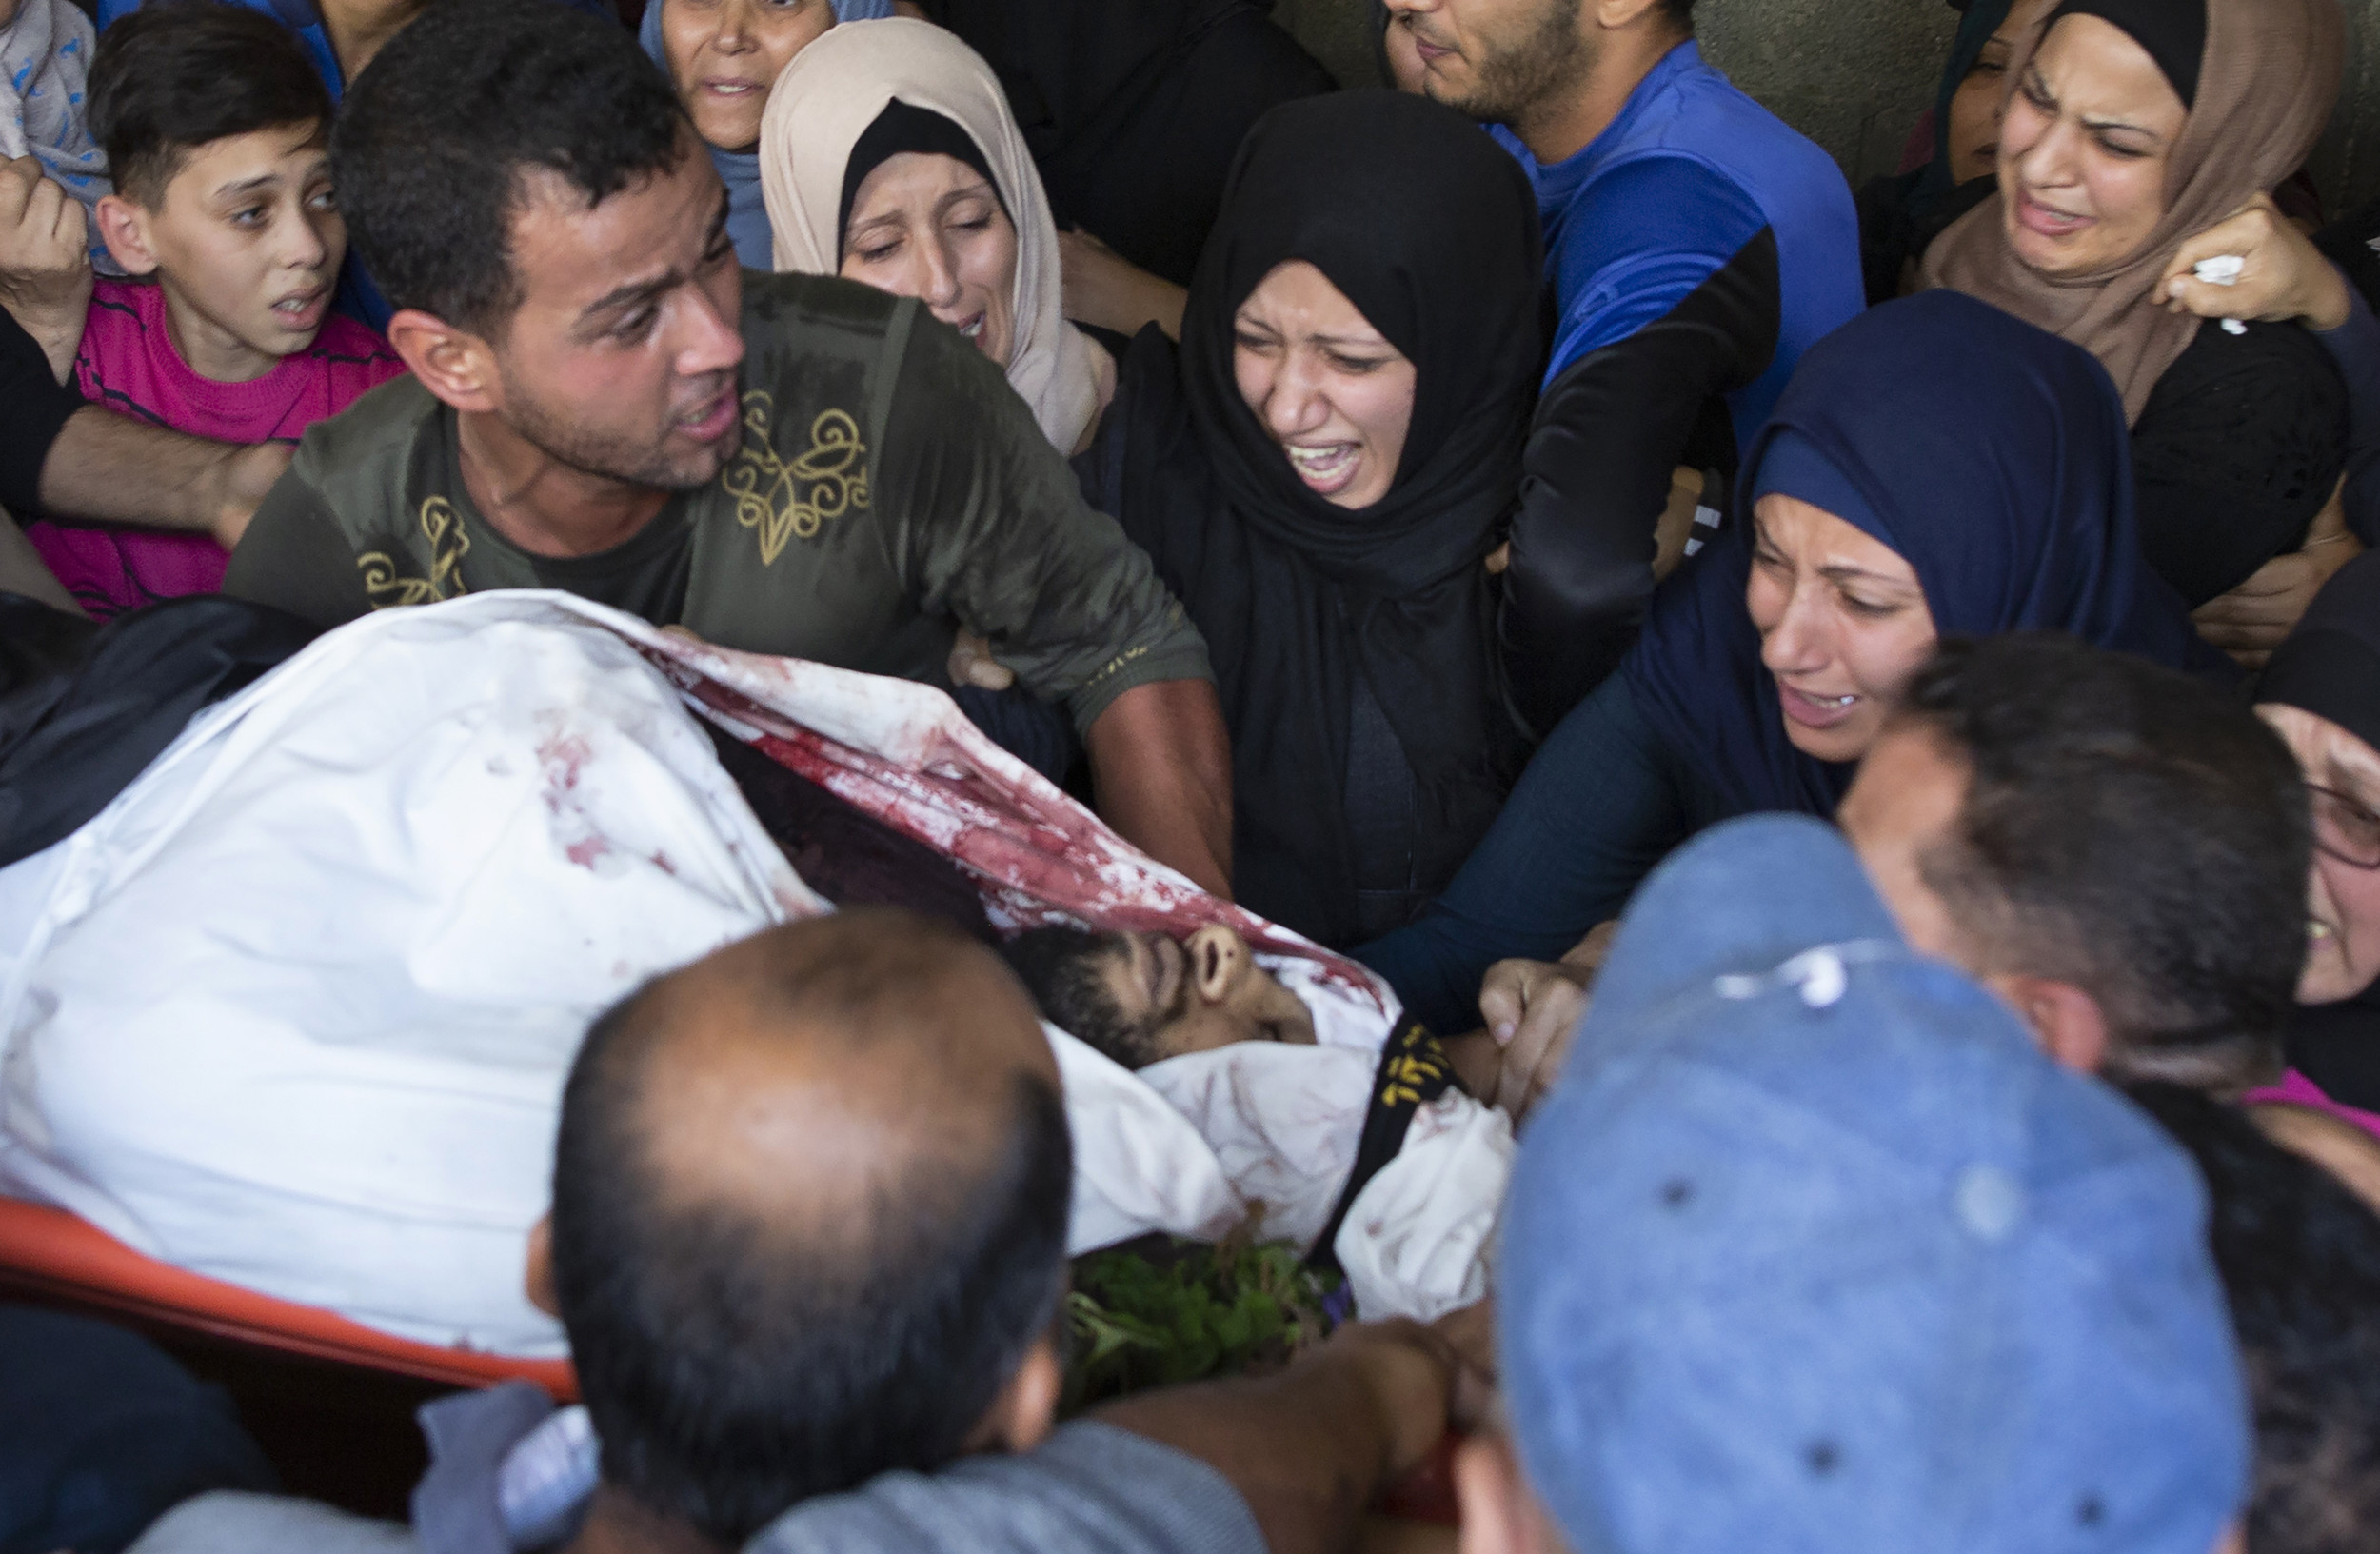 Israel vows to keep hitting militants as 18 killed in Gaza